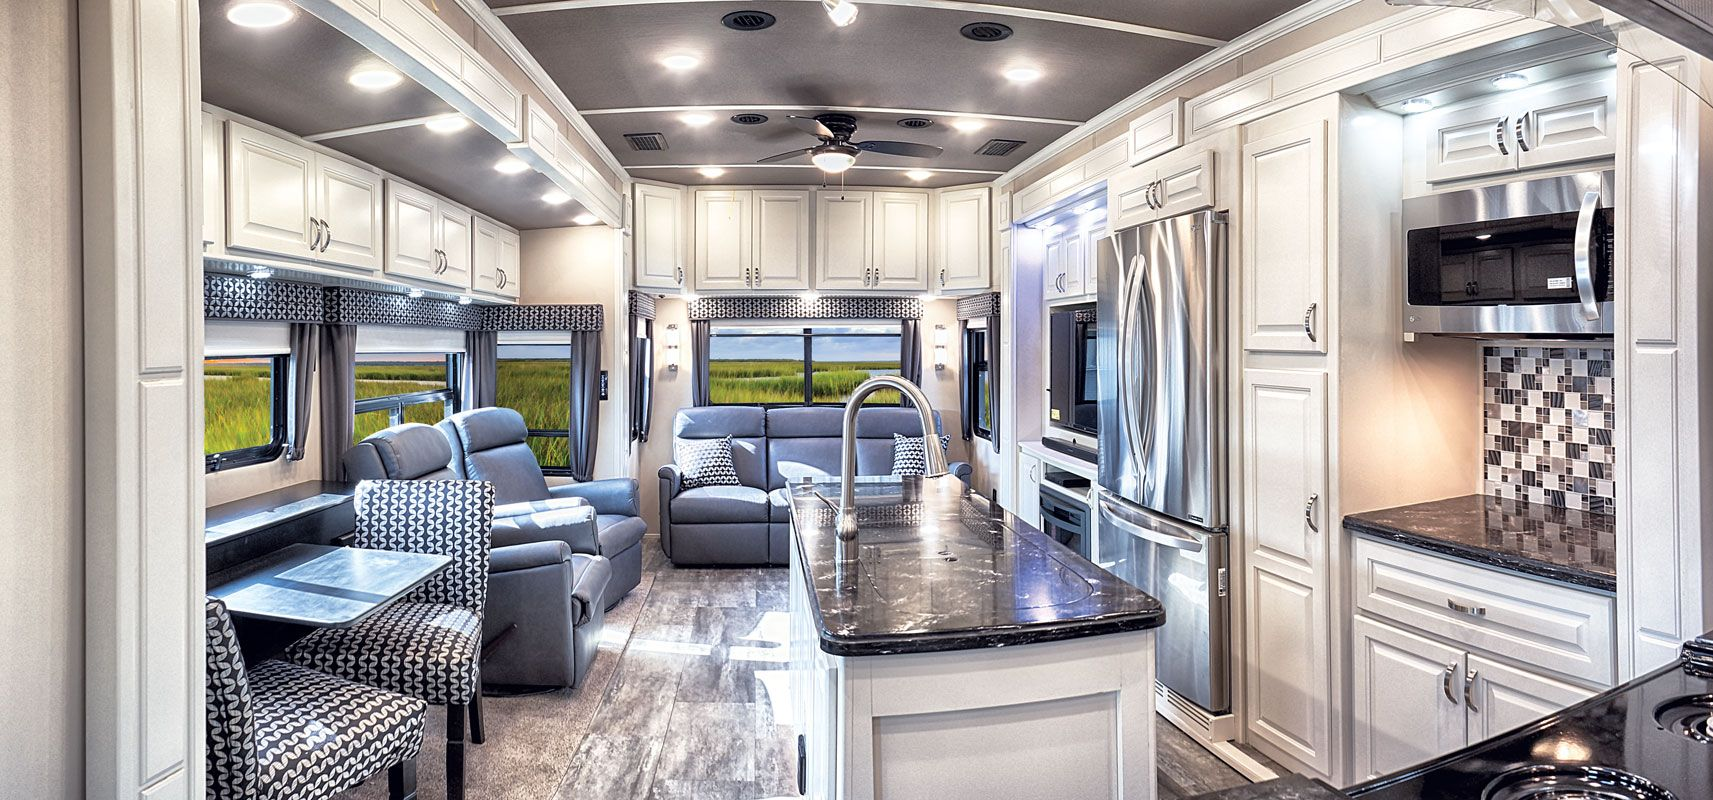 images/Luxe/slides/luxury_fifth_wheel_living_room_pano.jpg